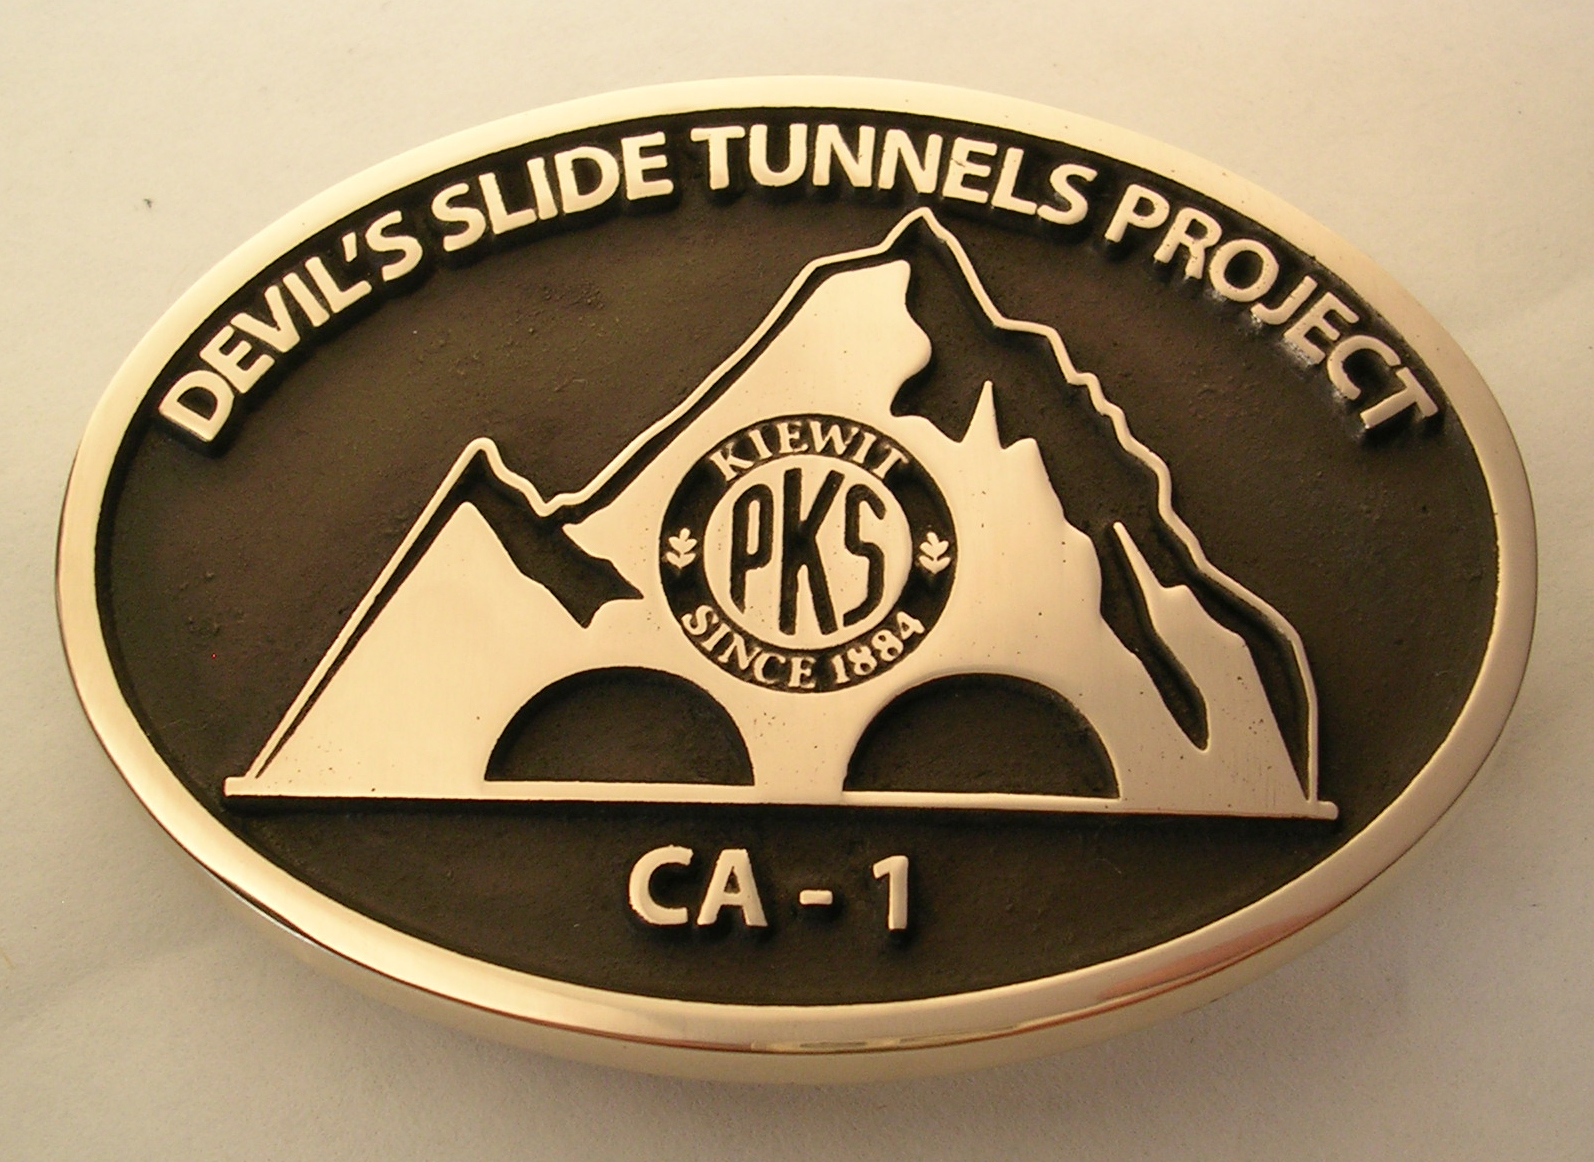 PKS Kiewit California Belt Buckle